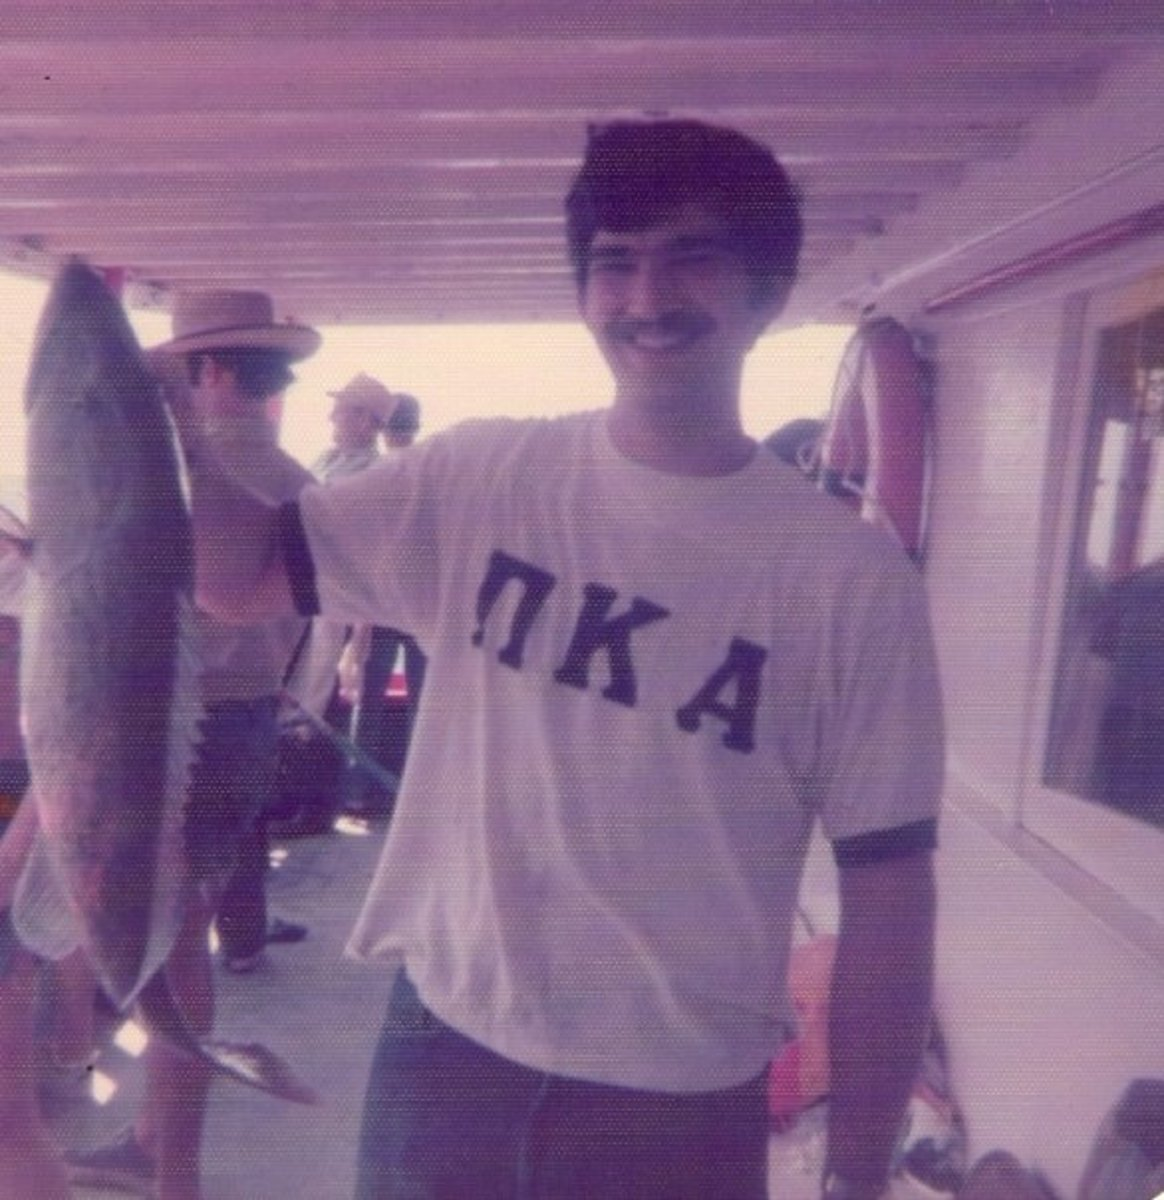 David Ligler caught this 23 lb grouper on a fishing trip in 1975. He won a $300 prize.